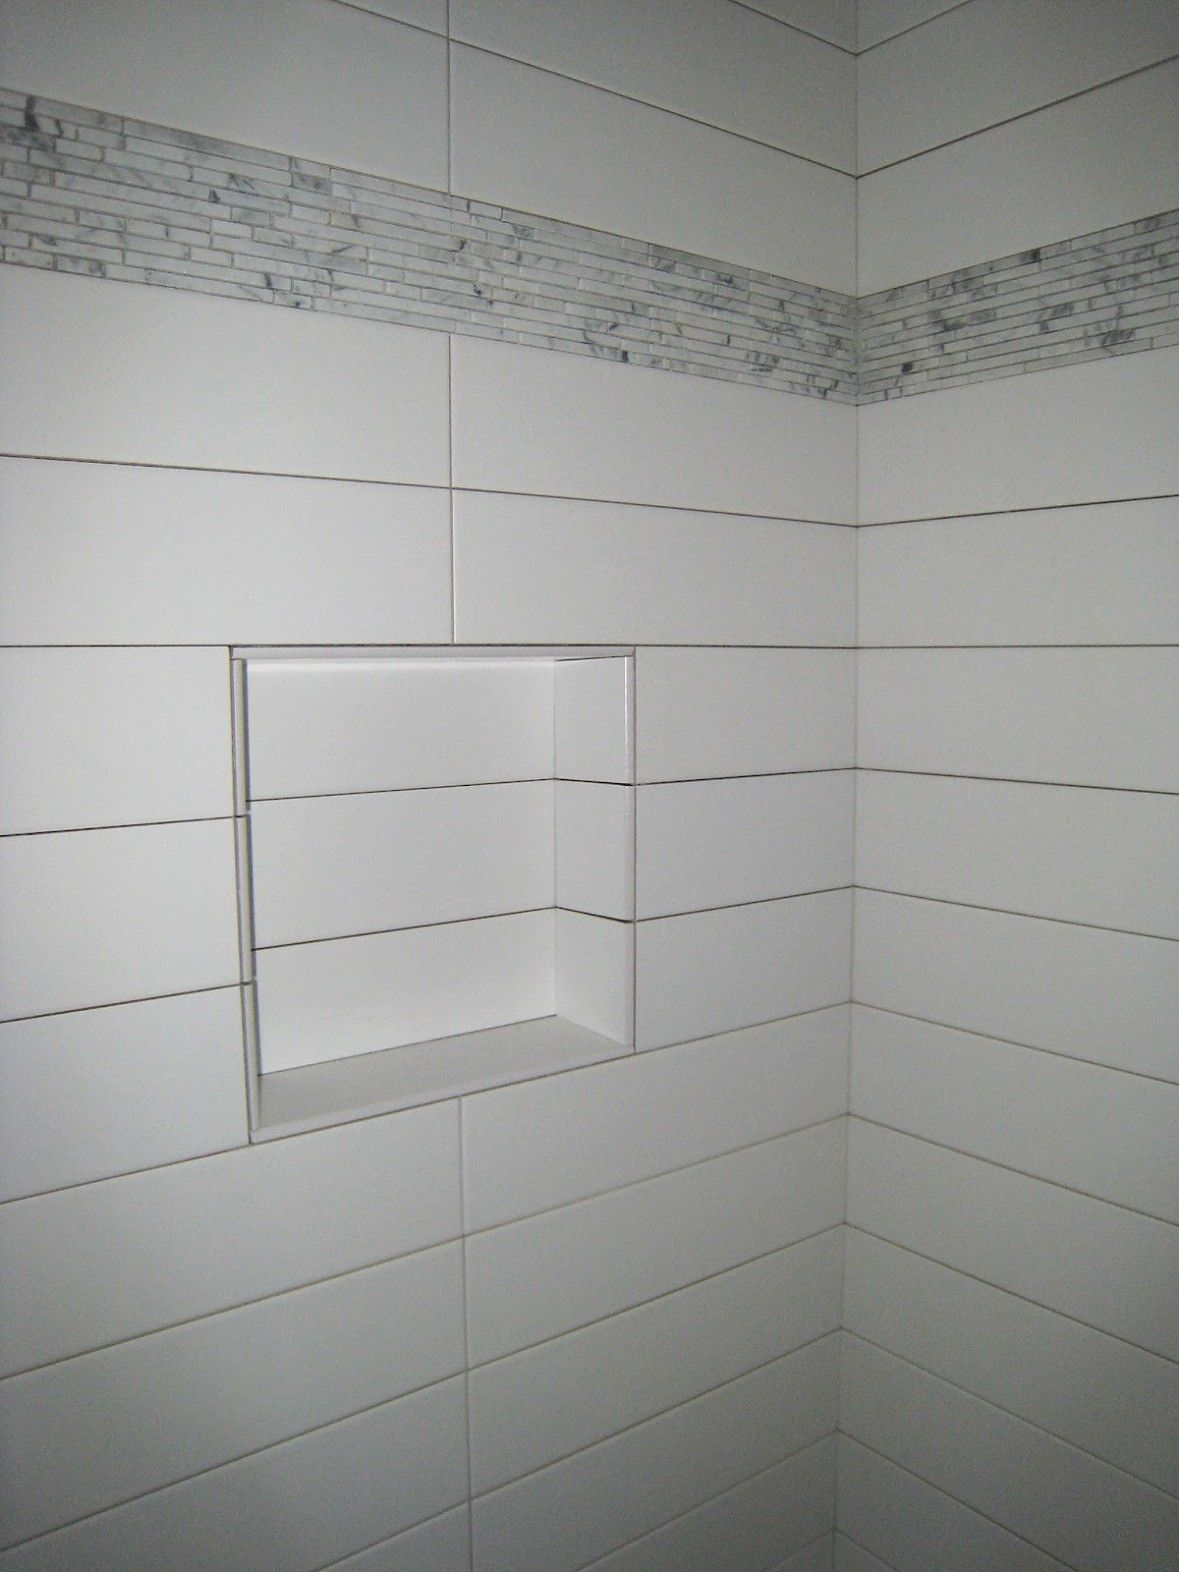 Stacked 10 x 4 white tile in bathroom with niche bathroom wall stacked 10 x 4 white tile in bathroom with niche dailygadgetfo Choice Image